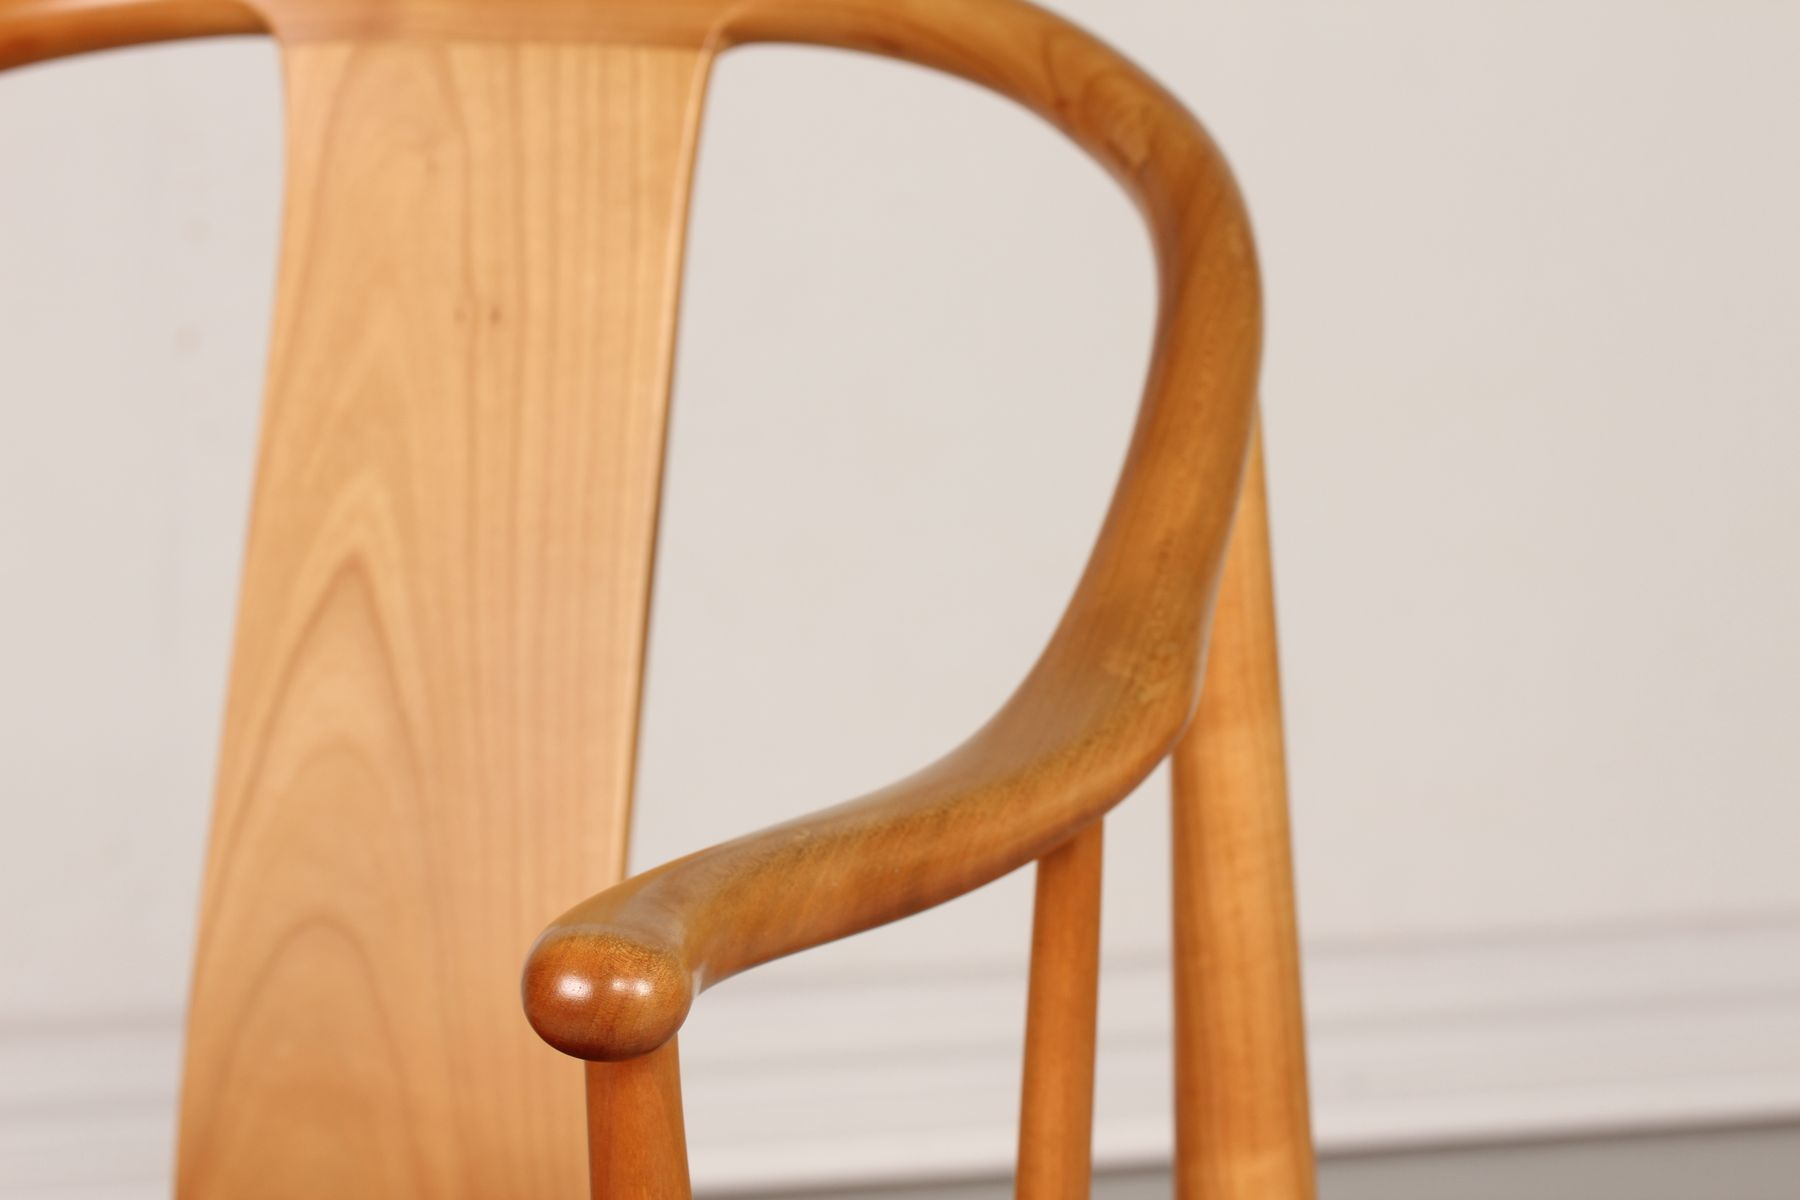 Vintage FH 4283 China Chair By Hans J. Wegner For Fritz Hansen, 1984 For  Sale At Pamono